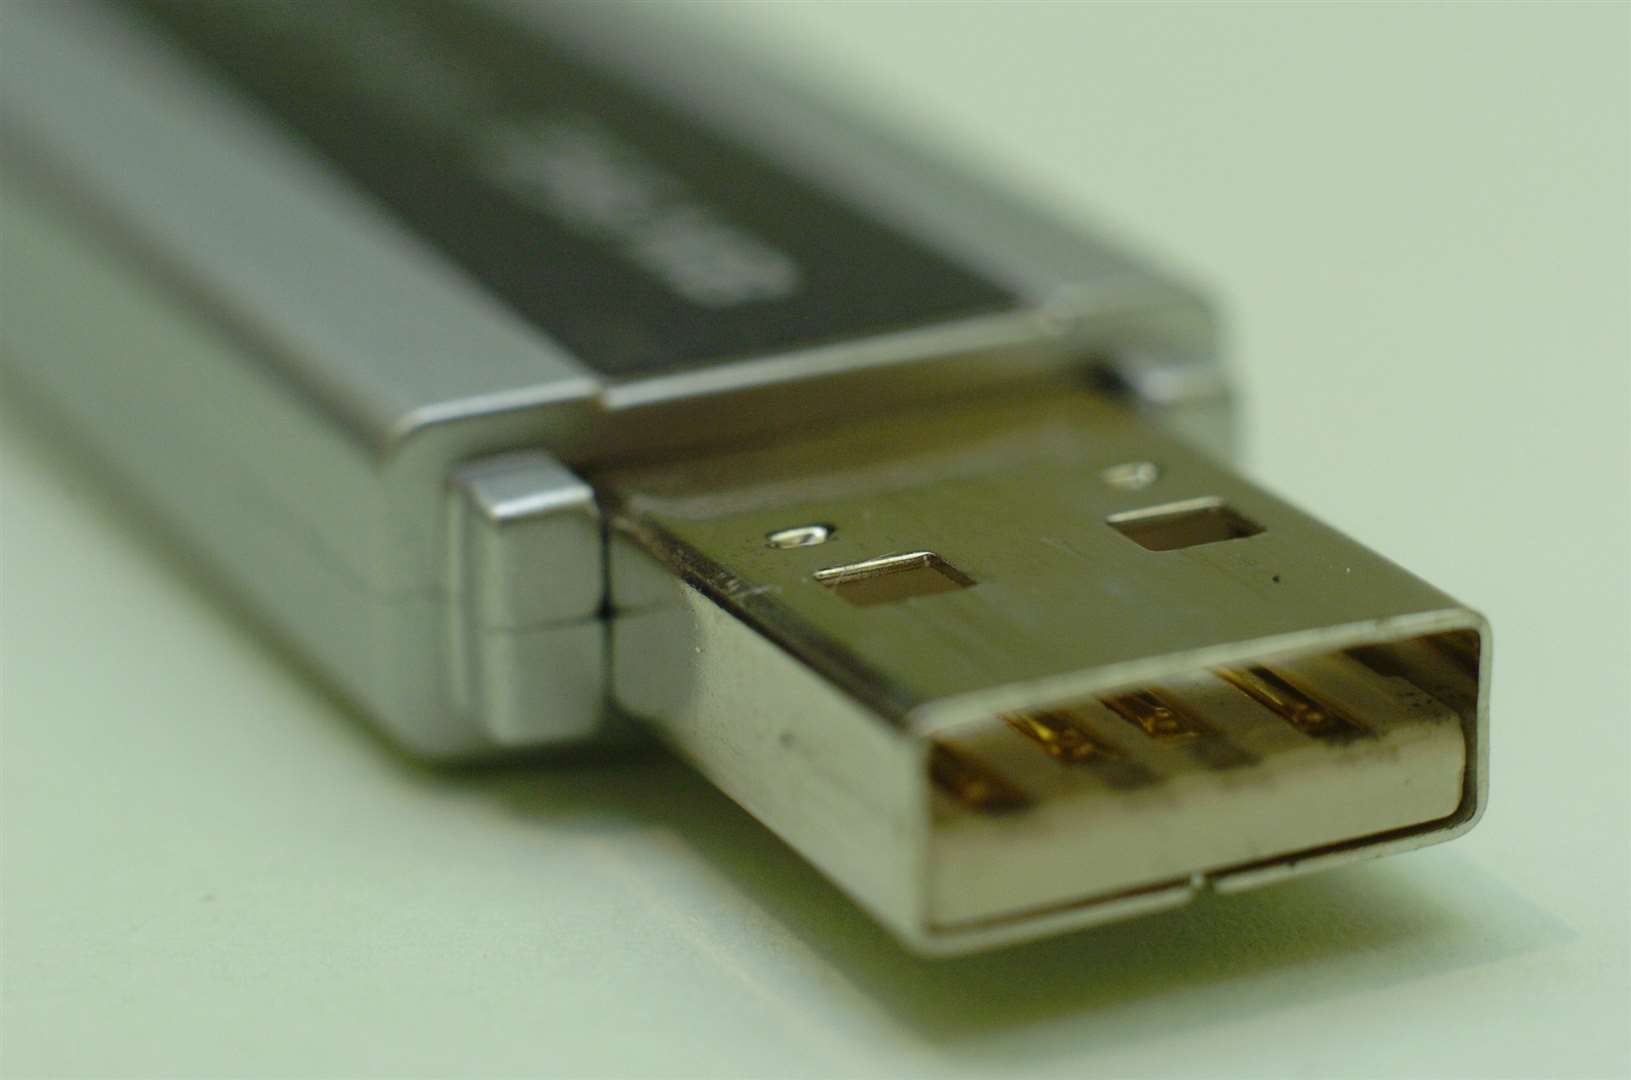 USB sticks can be encrypted for transferring data